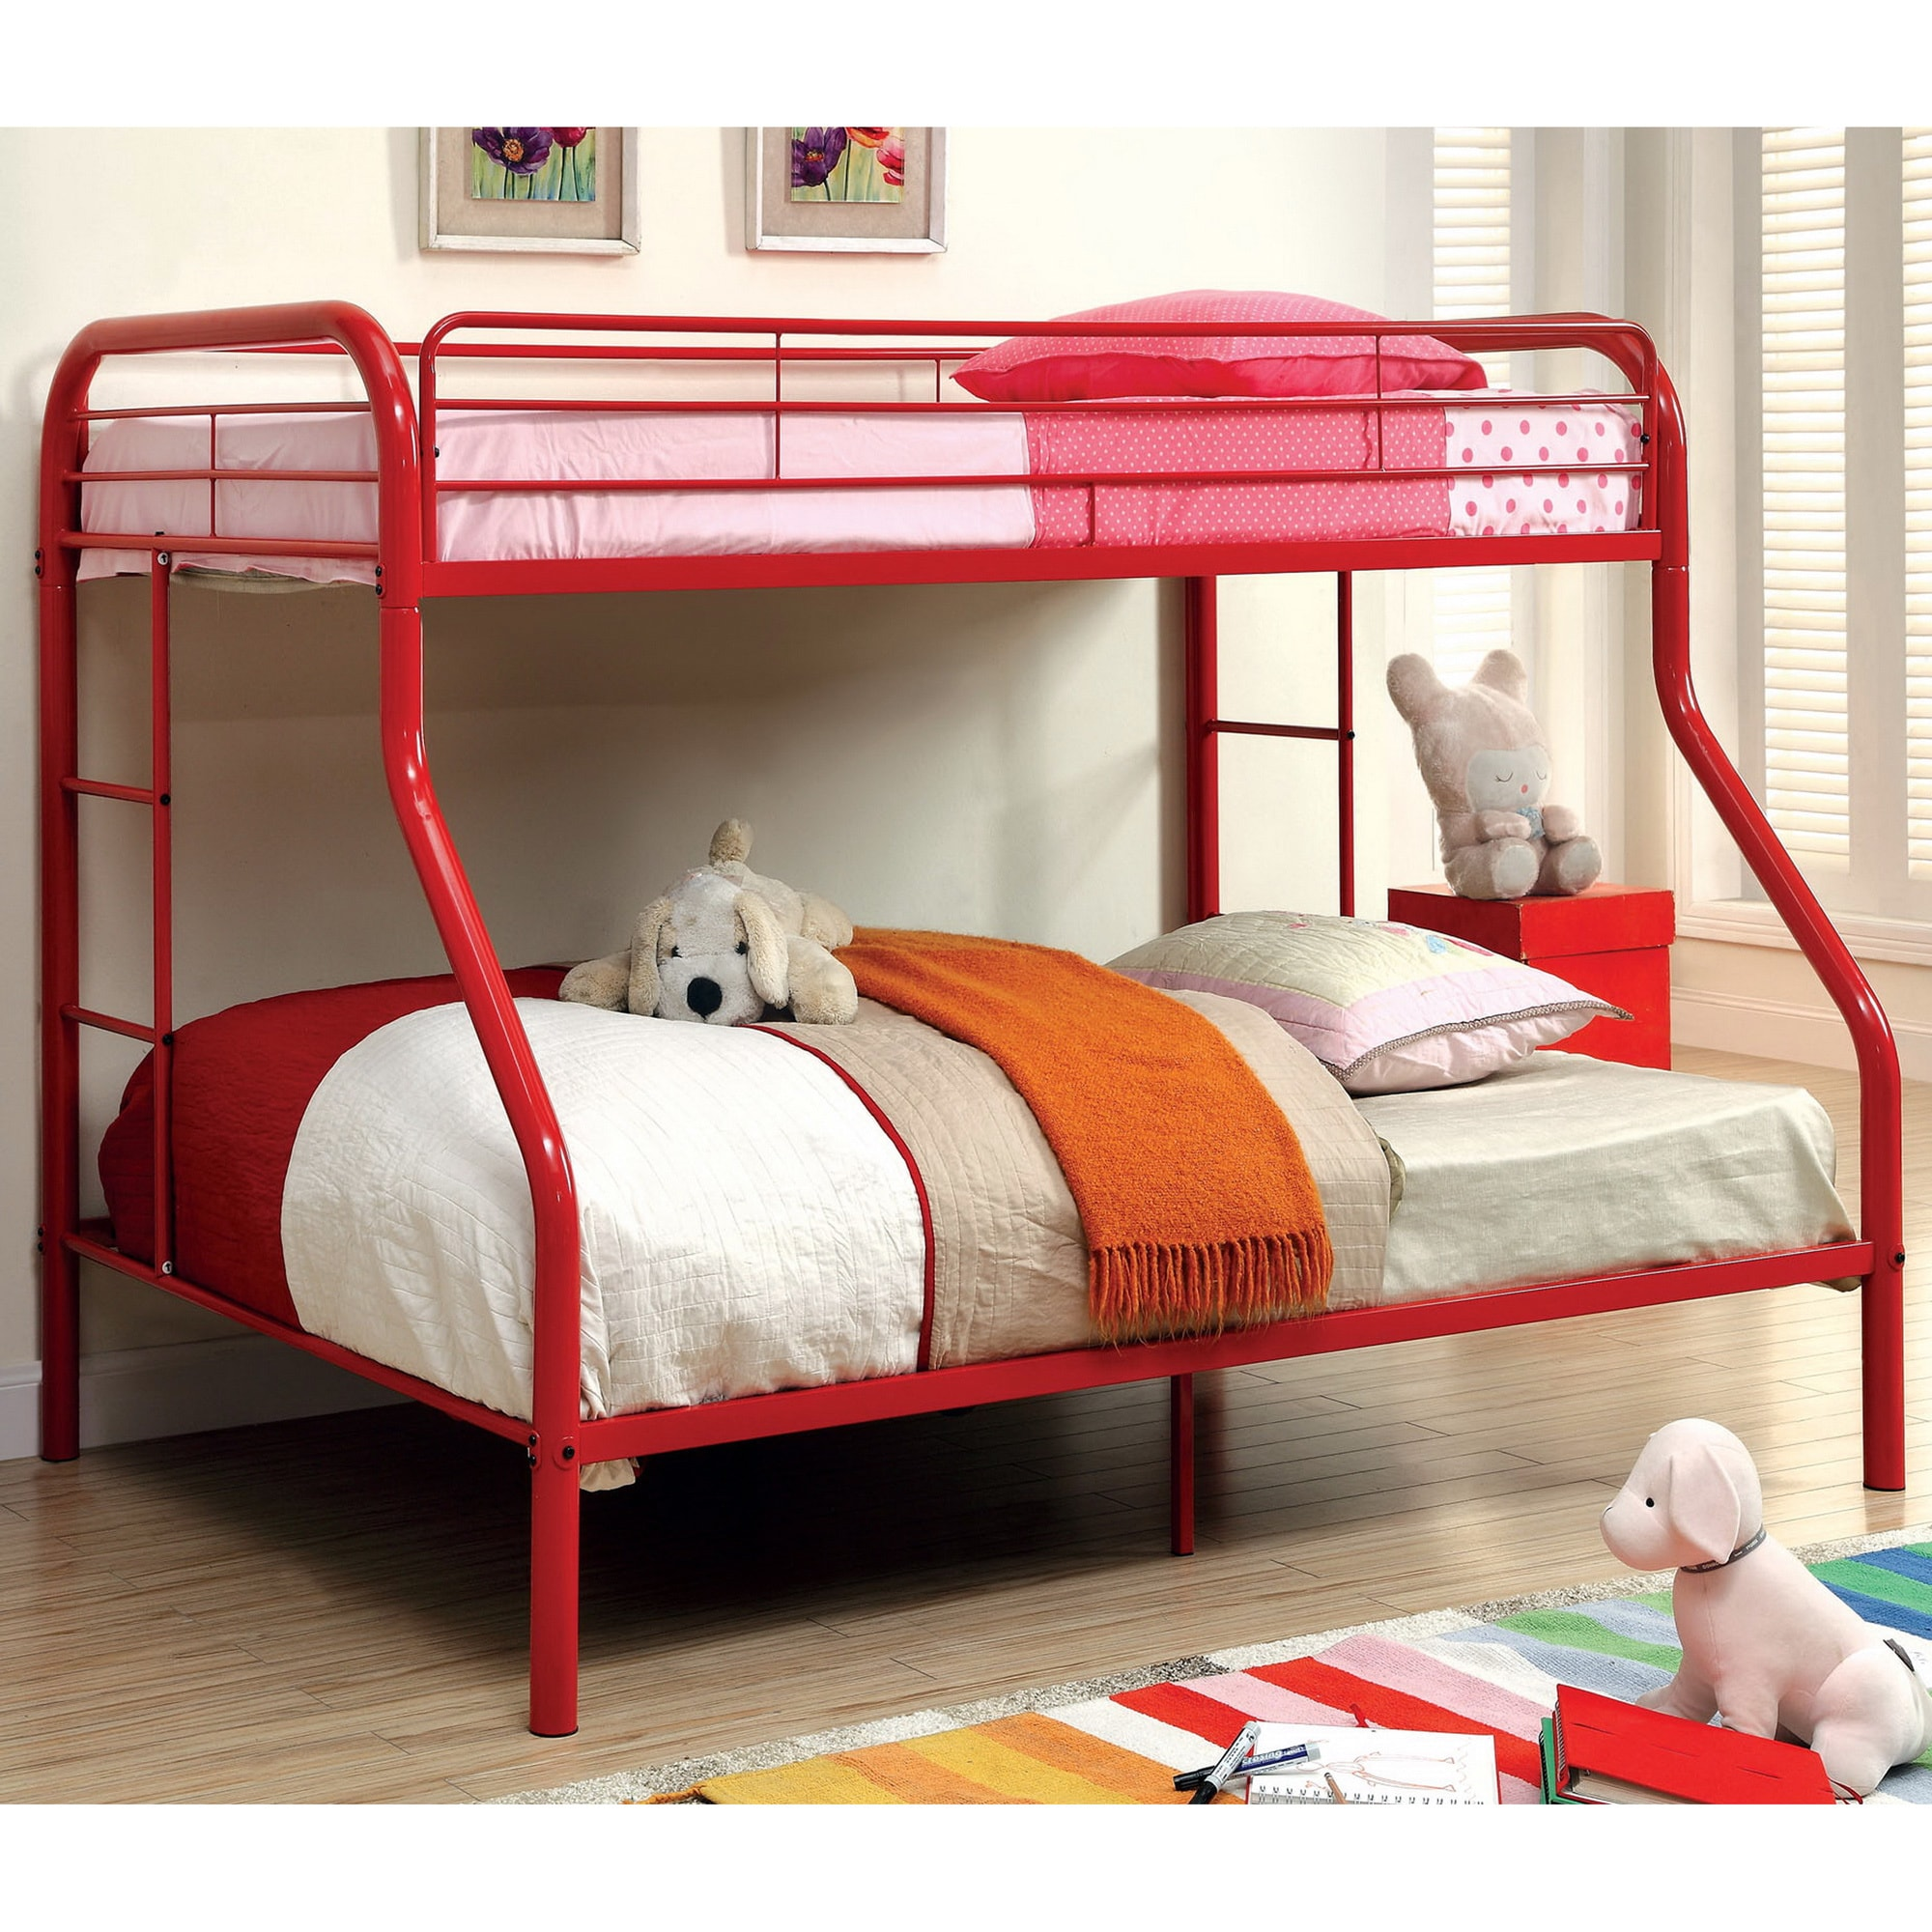 Furniture of America Linden Twin Over Full Metal Bunk Bed - Free Shipping  Today - Overstock.com - 16100962